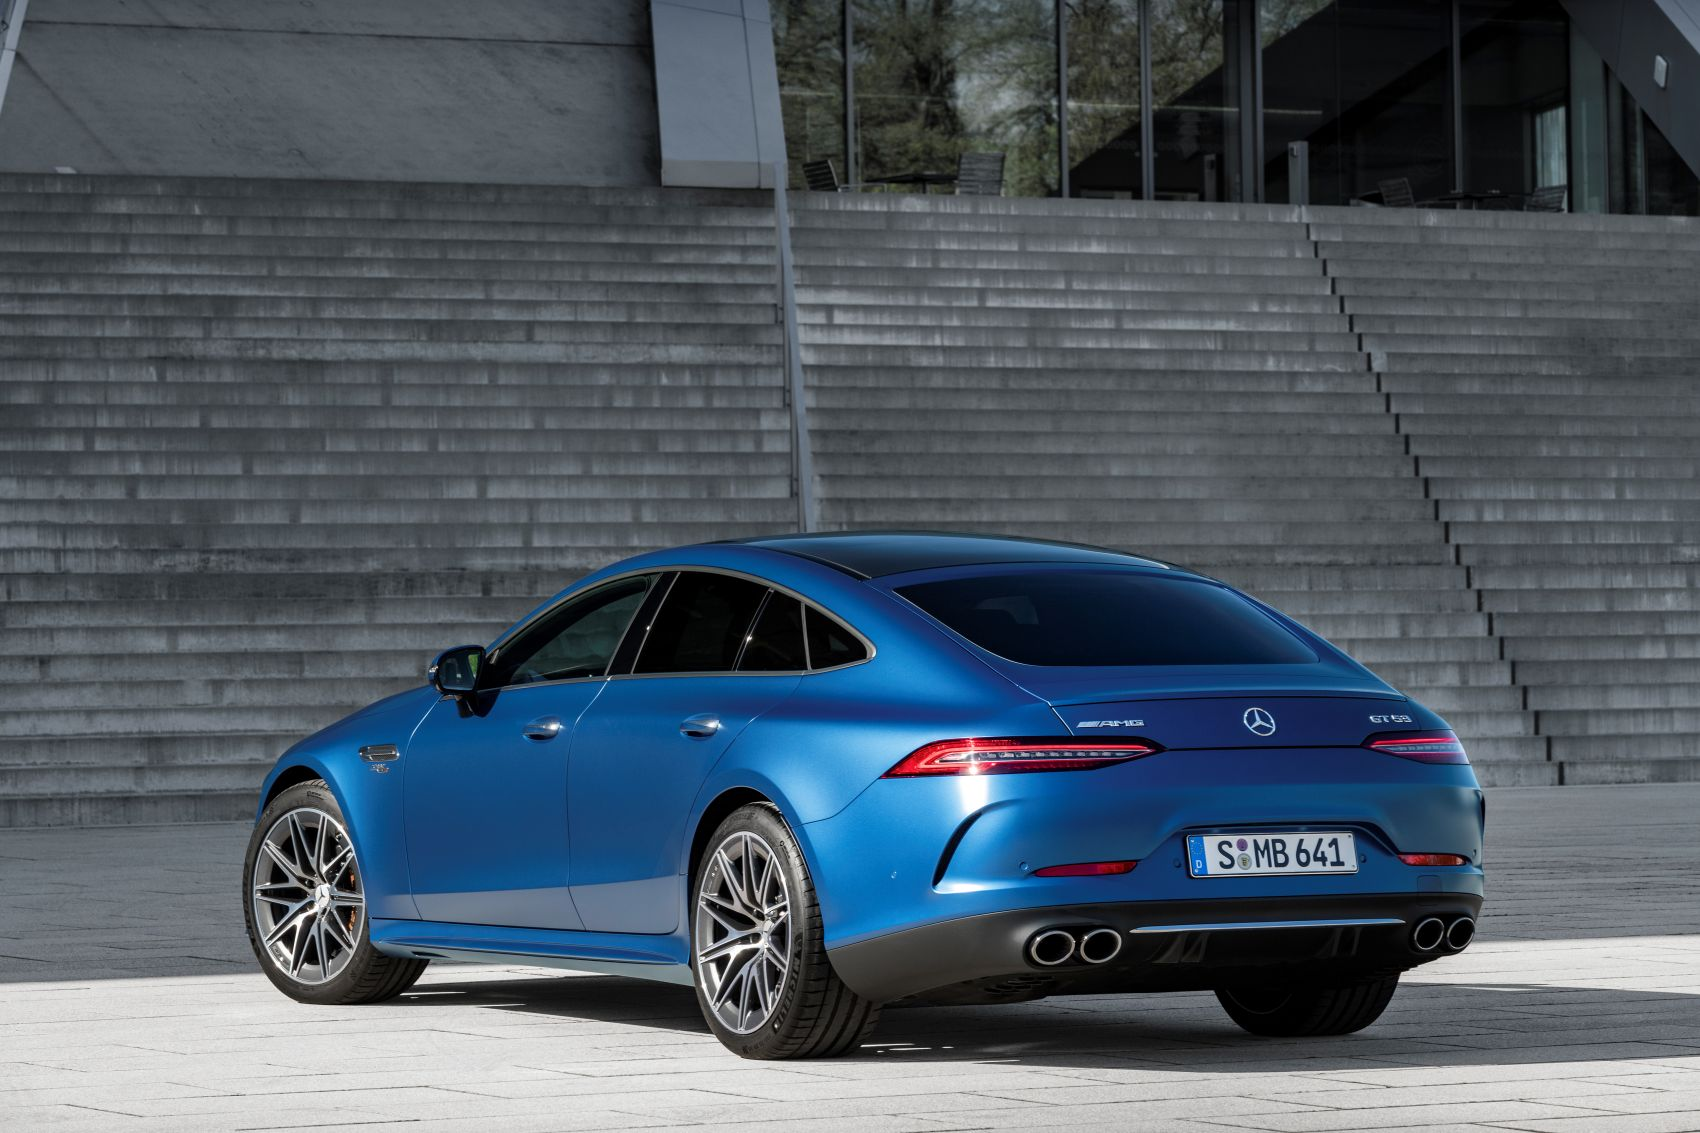 AMG GT 53 4matic Facelift